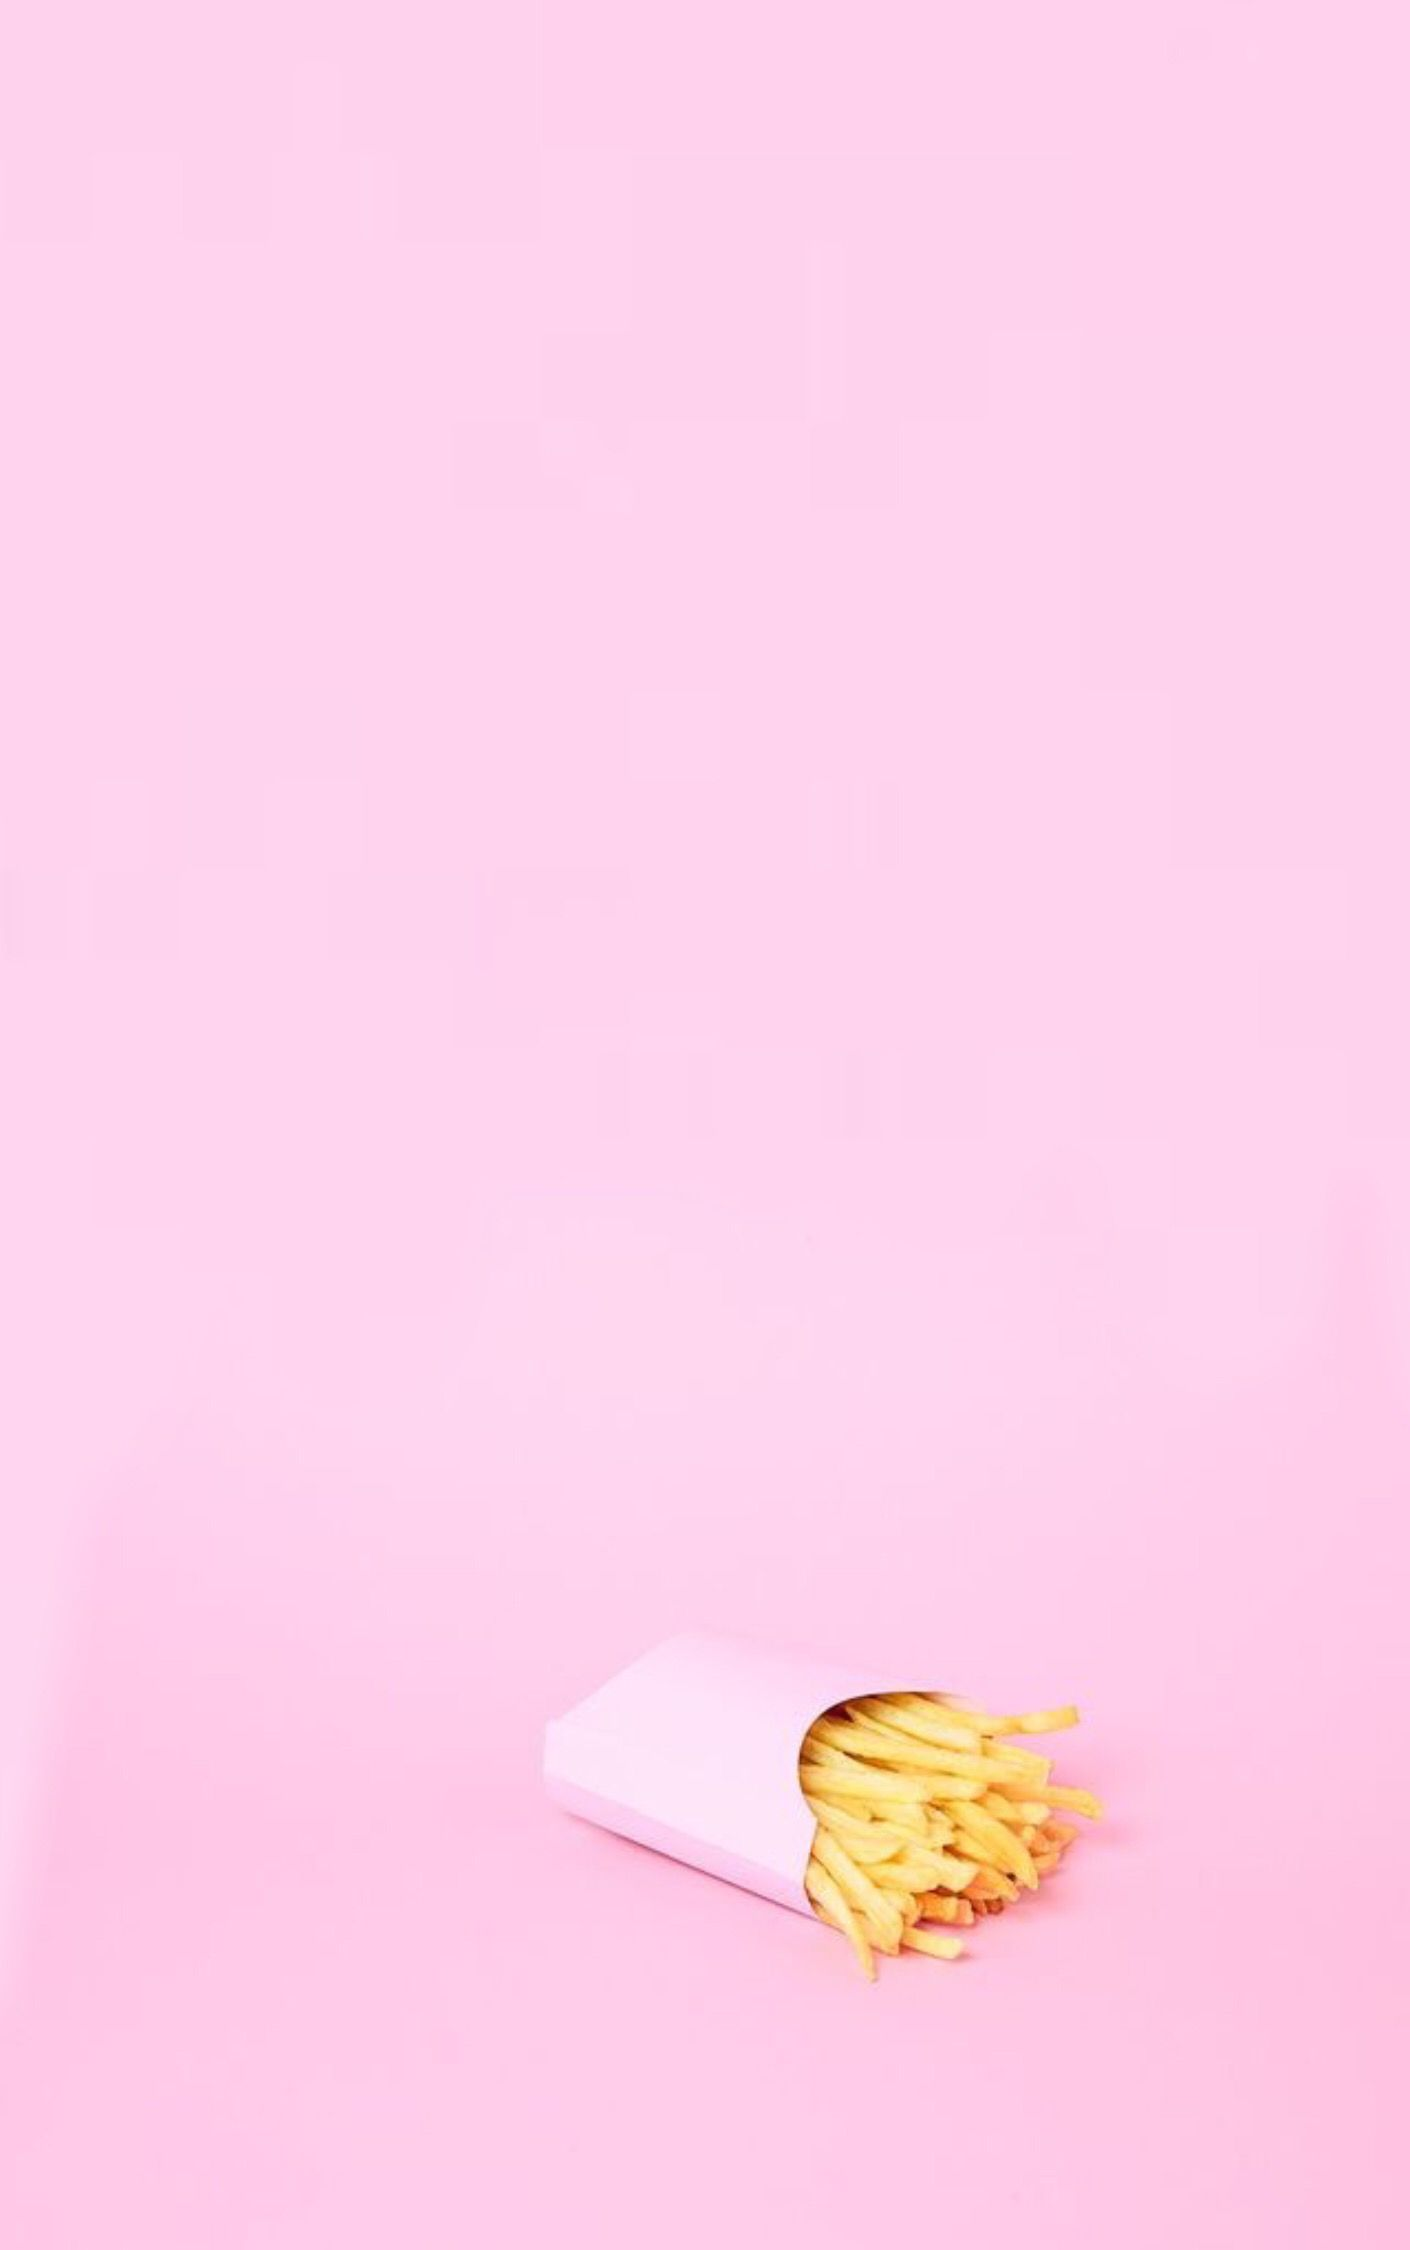 Pin By Aitor Gomez On Wallpaper Baby Pink Wallpaper Iphone Pink Wallpaper Iphone Pink Wallpaper